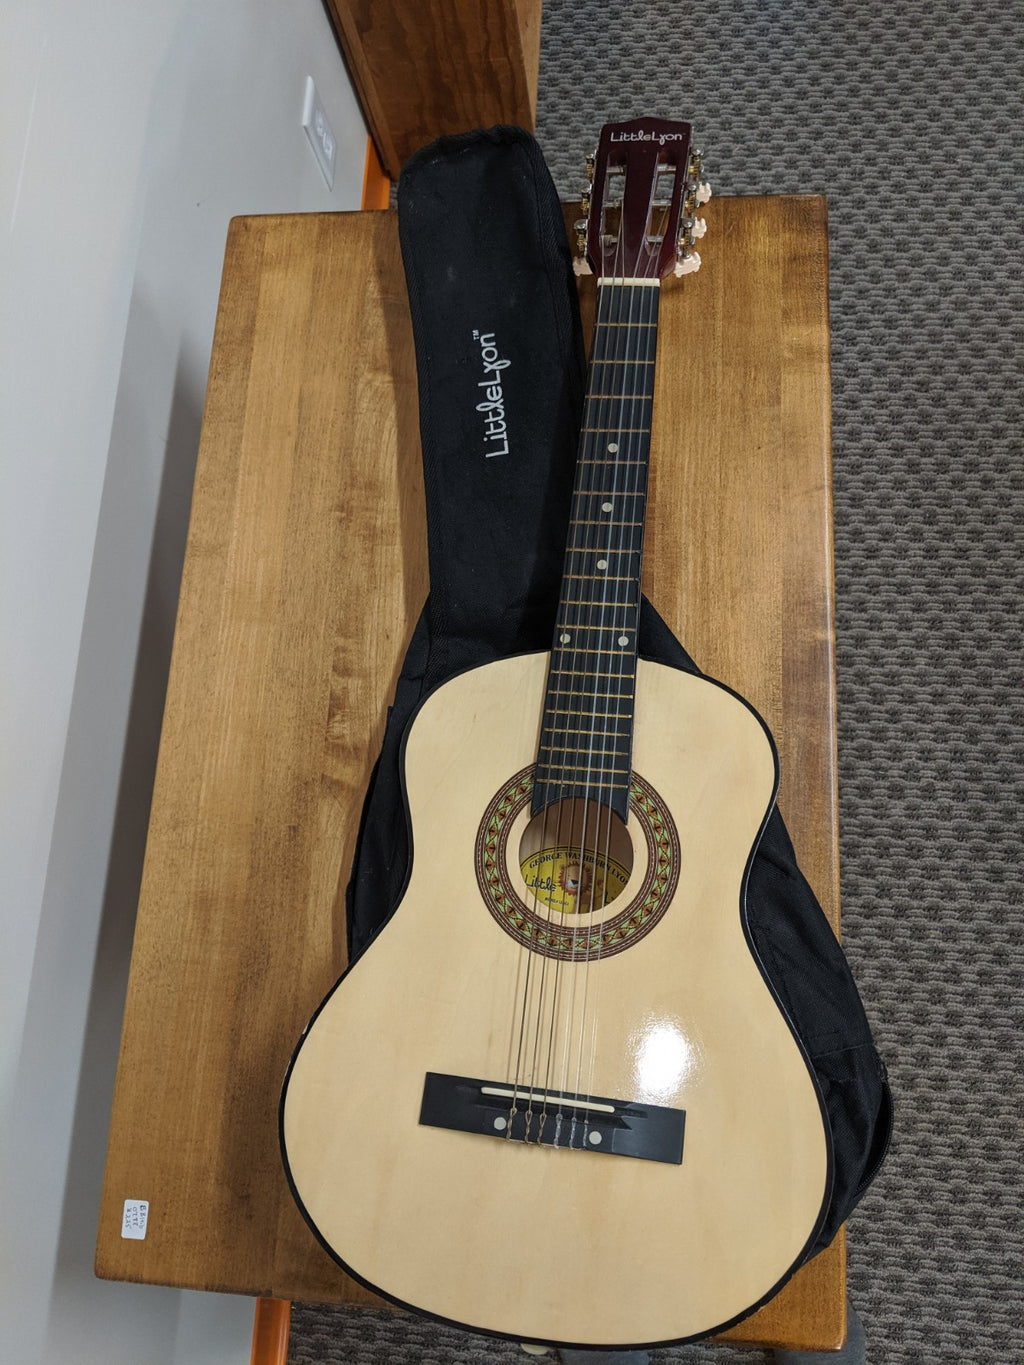 George Washburn Lyon Little Lyon Guitar and case